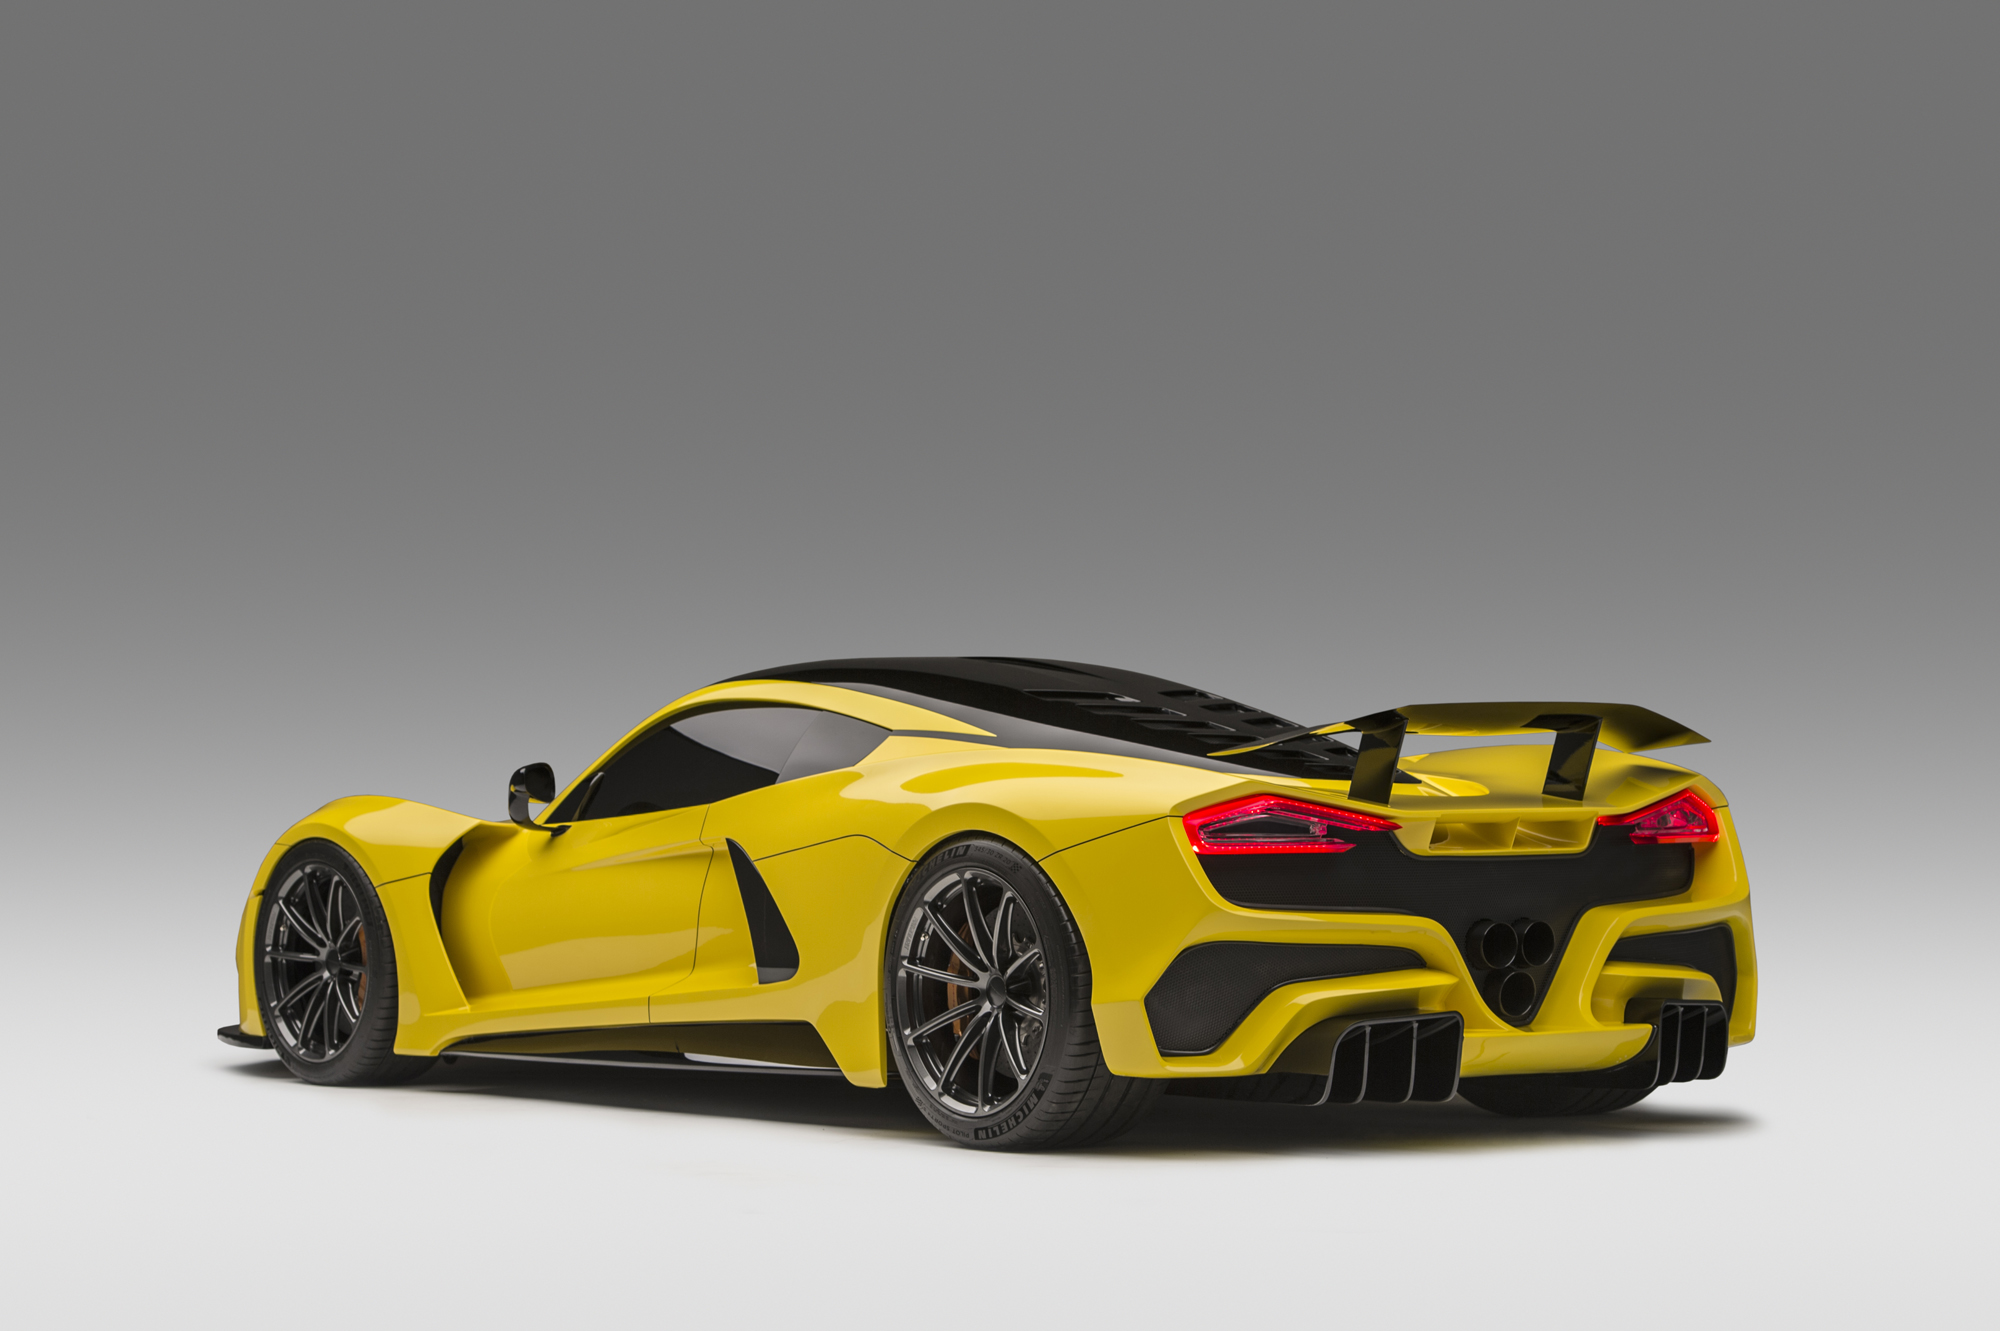 Hennessey Venom F5 Side Angle Photo